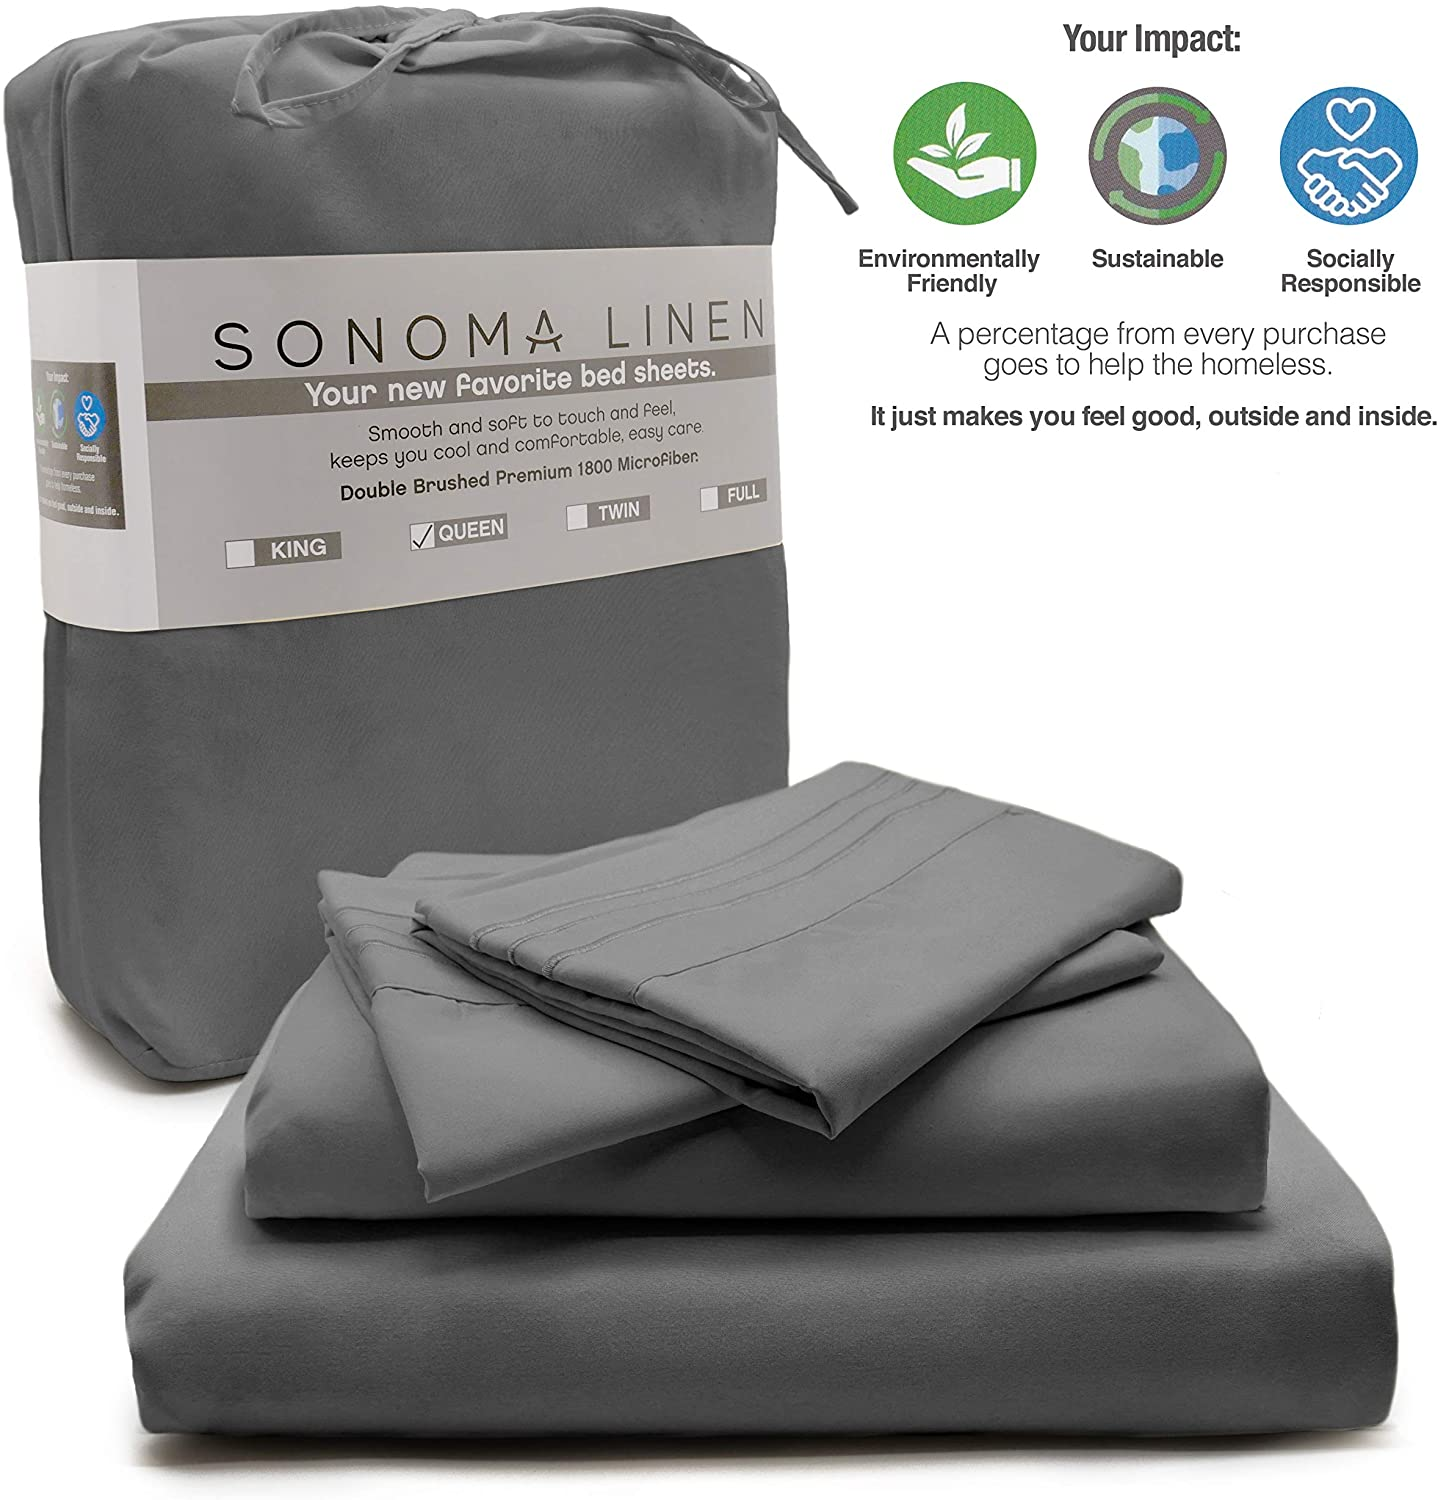 SONOMA LINEN Super Soft King Size Sheets deep Pocket Grey 4 Piece King Sheet Set 1800 T C Bedding Microfiber Wrinkle Stain and Fade Resistant Hypoallergenic Breathable and Cooling Hotel Quality